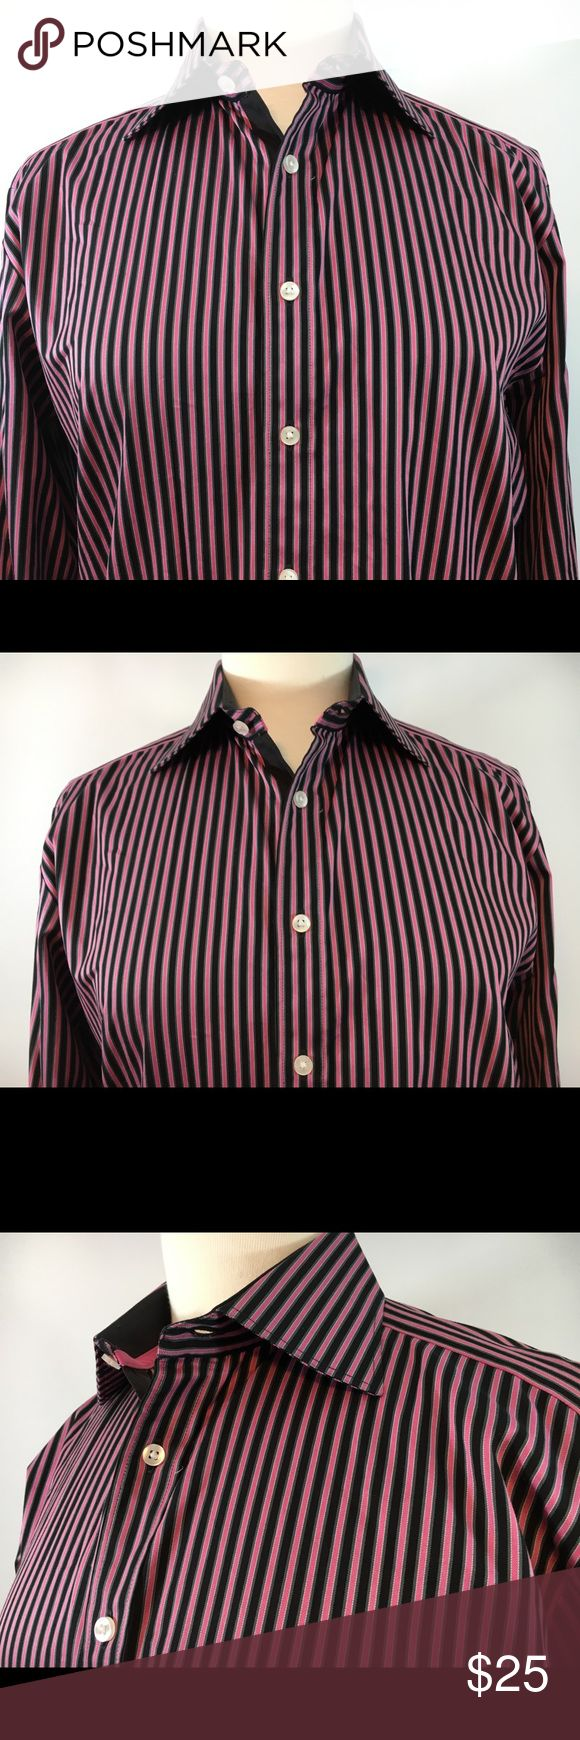 THOMAS PINK JERMYN STREET LONDON BLOUSE Slim Fit THOMAS PINK JERMYN STREET LONDON  CLASSIC OXFORD SHIRT FULL BUTTON FRONT  PINK BLACK GRAY & WHITE PINSTRIPE  LONG SLEEVES FRENCH CUFFS 100% COTTON FINEST COTTON  WOMEN'S US SIZE - 15 *RUNS SMALL (Slim Fit) Thomas Pink Tops Blouses